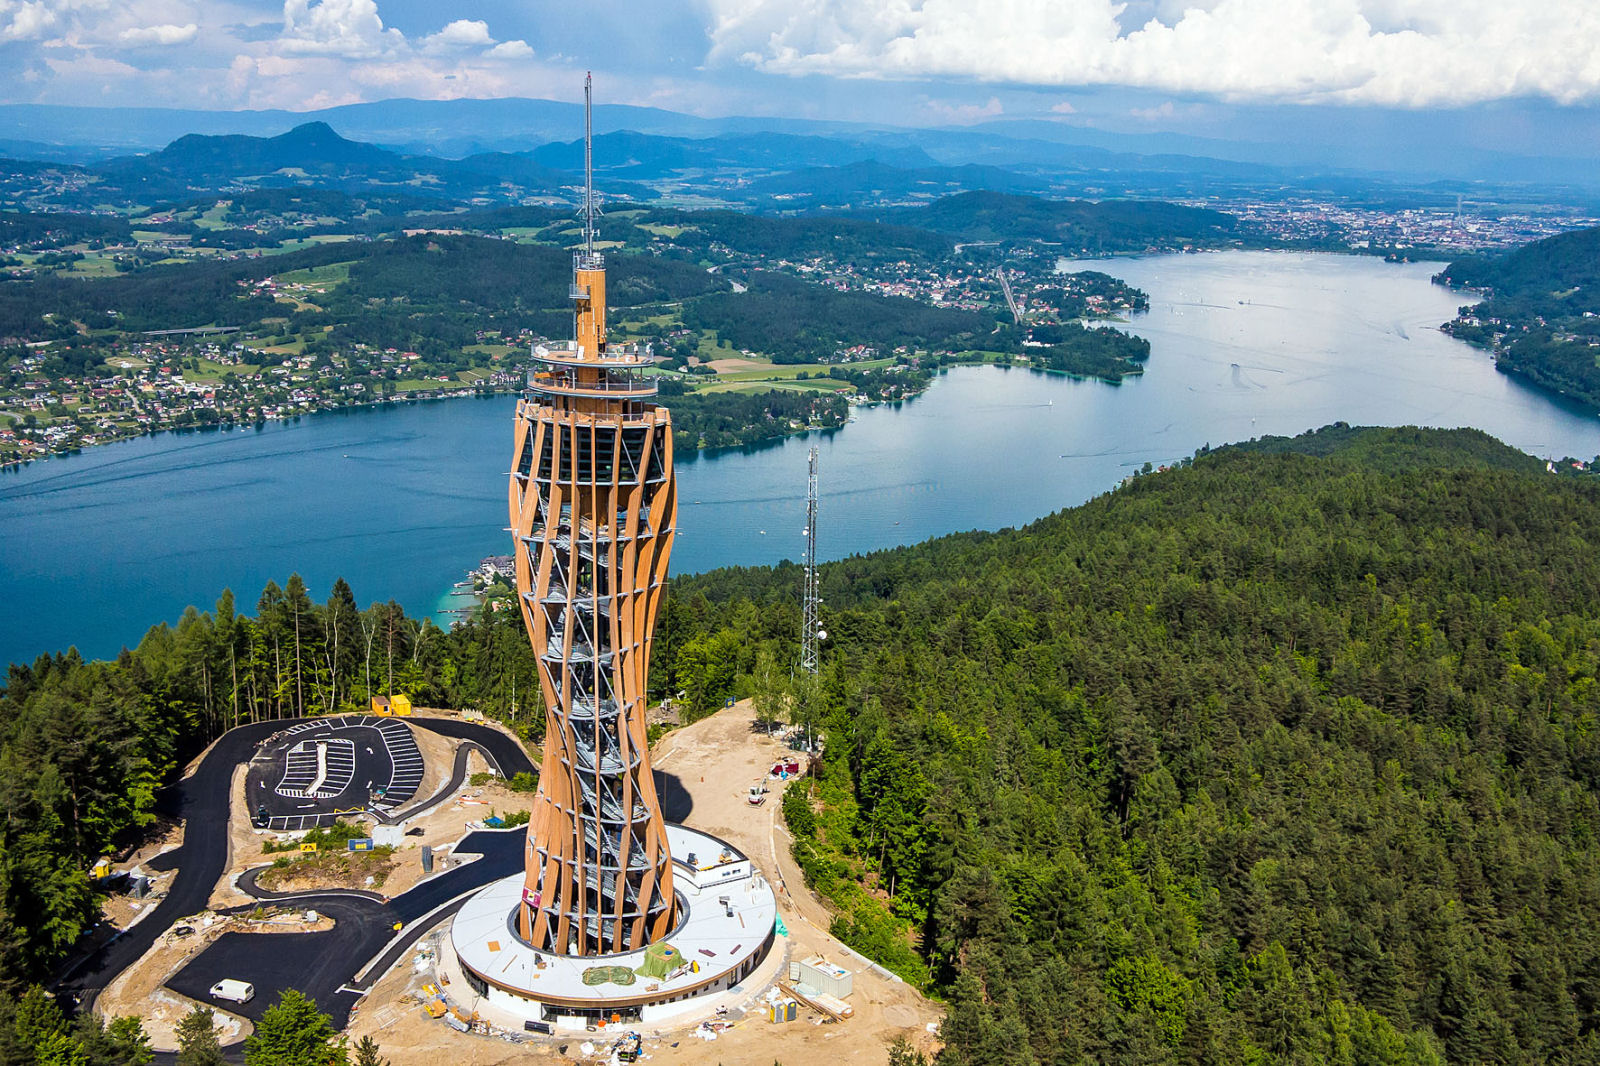 The Pyramidenkogel observation tower is located in Carinthia, Austria